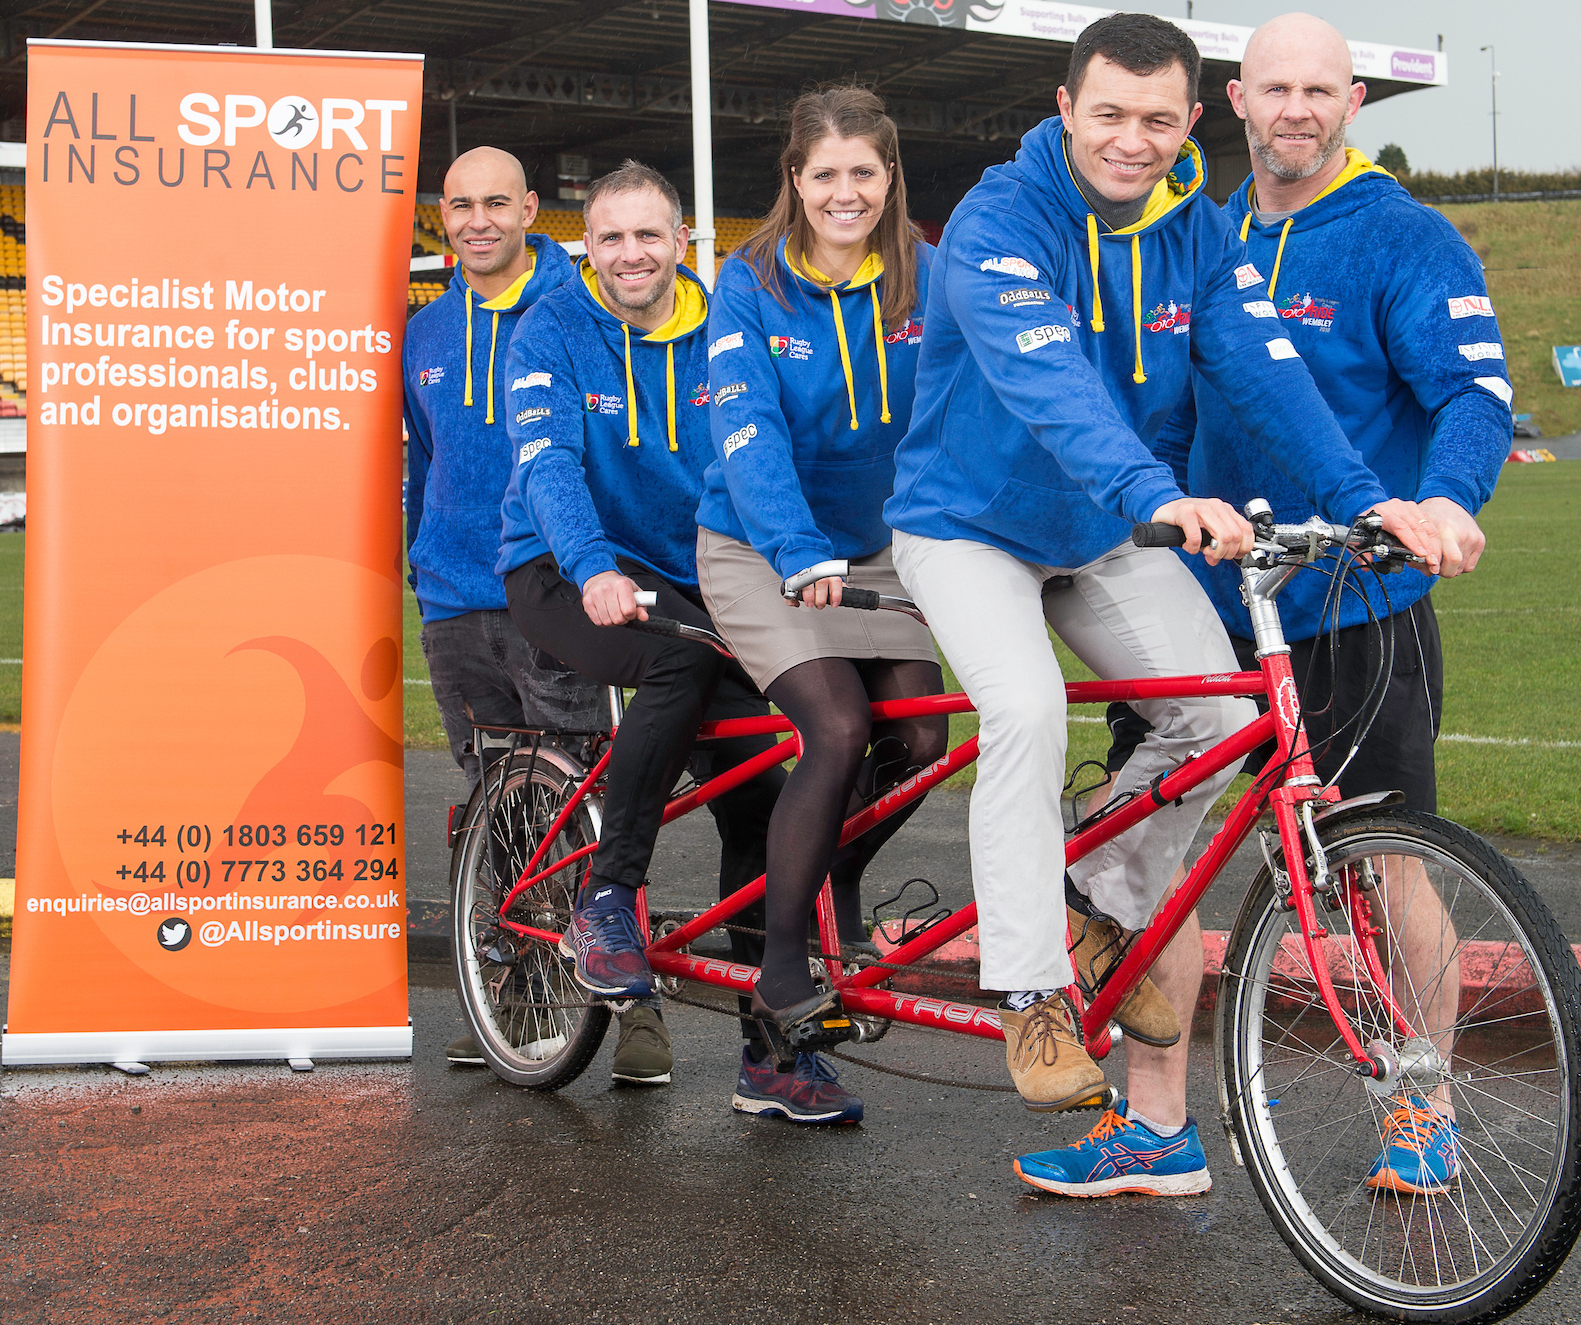 All Sport Insurance saddle up for the 2018 Ride to Wembley